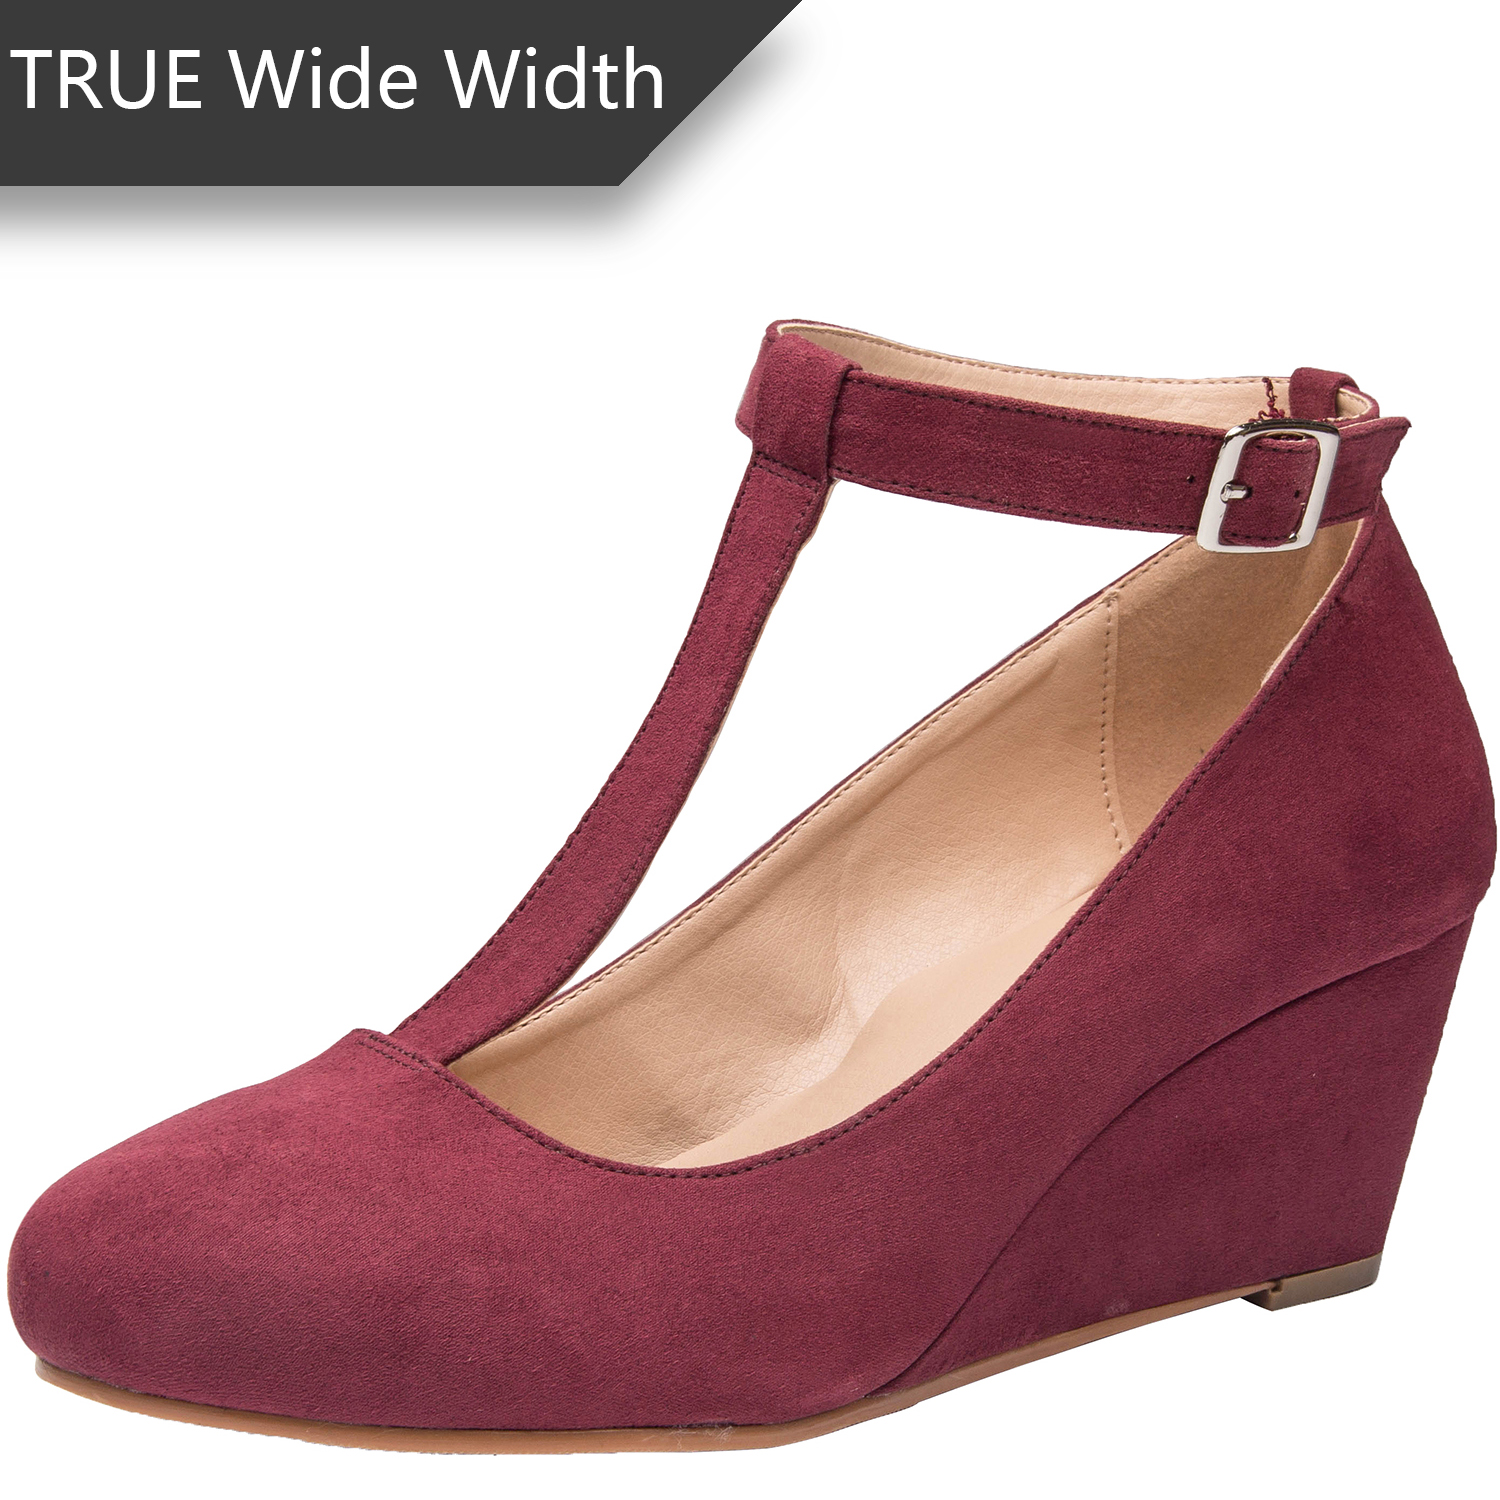 23f43c30293 US  39.99 - Luoika Women s Wide Width Wedge Shoes - Mary Jane Heel Pump  with T-Strap. - www.luoika-us.com